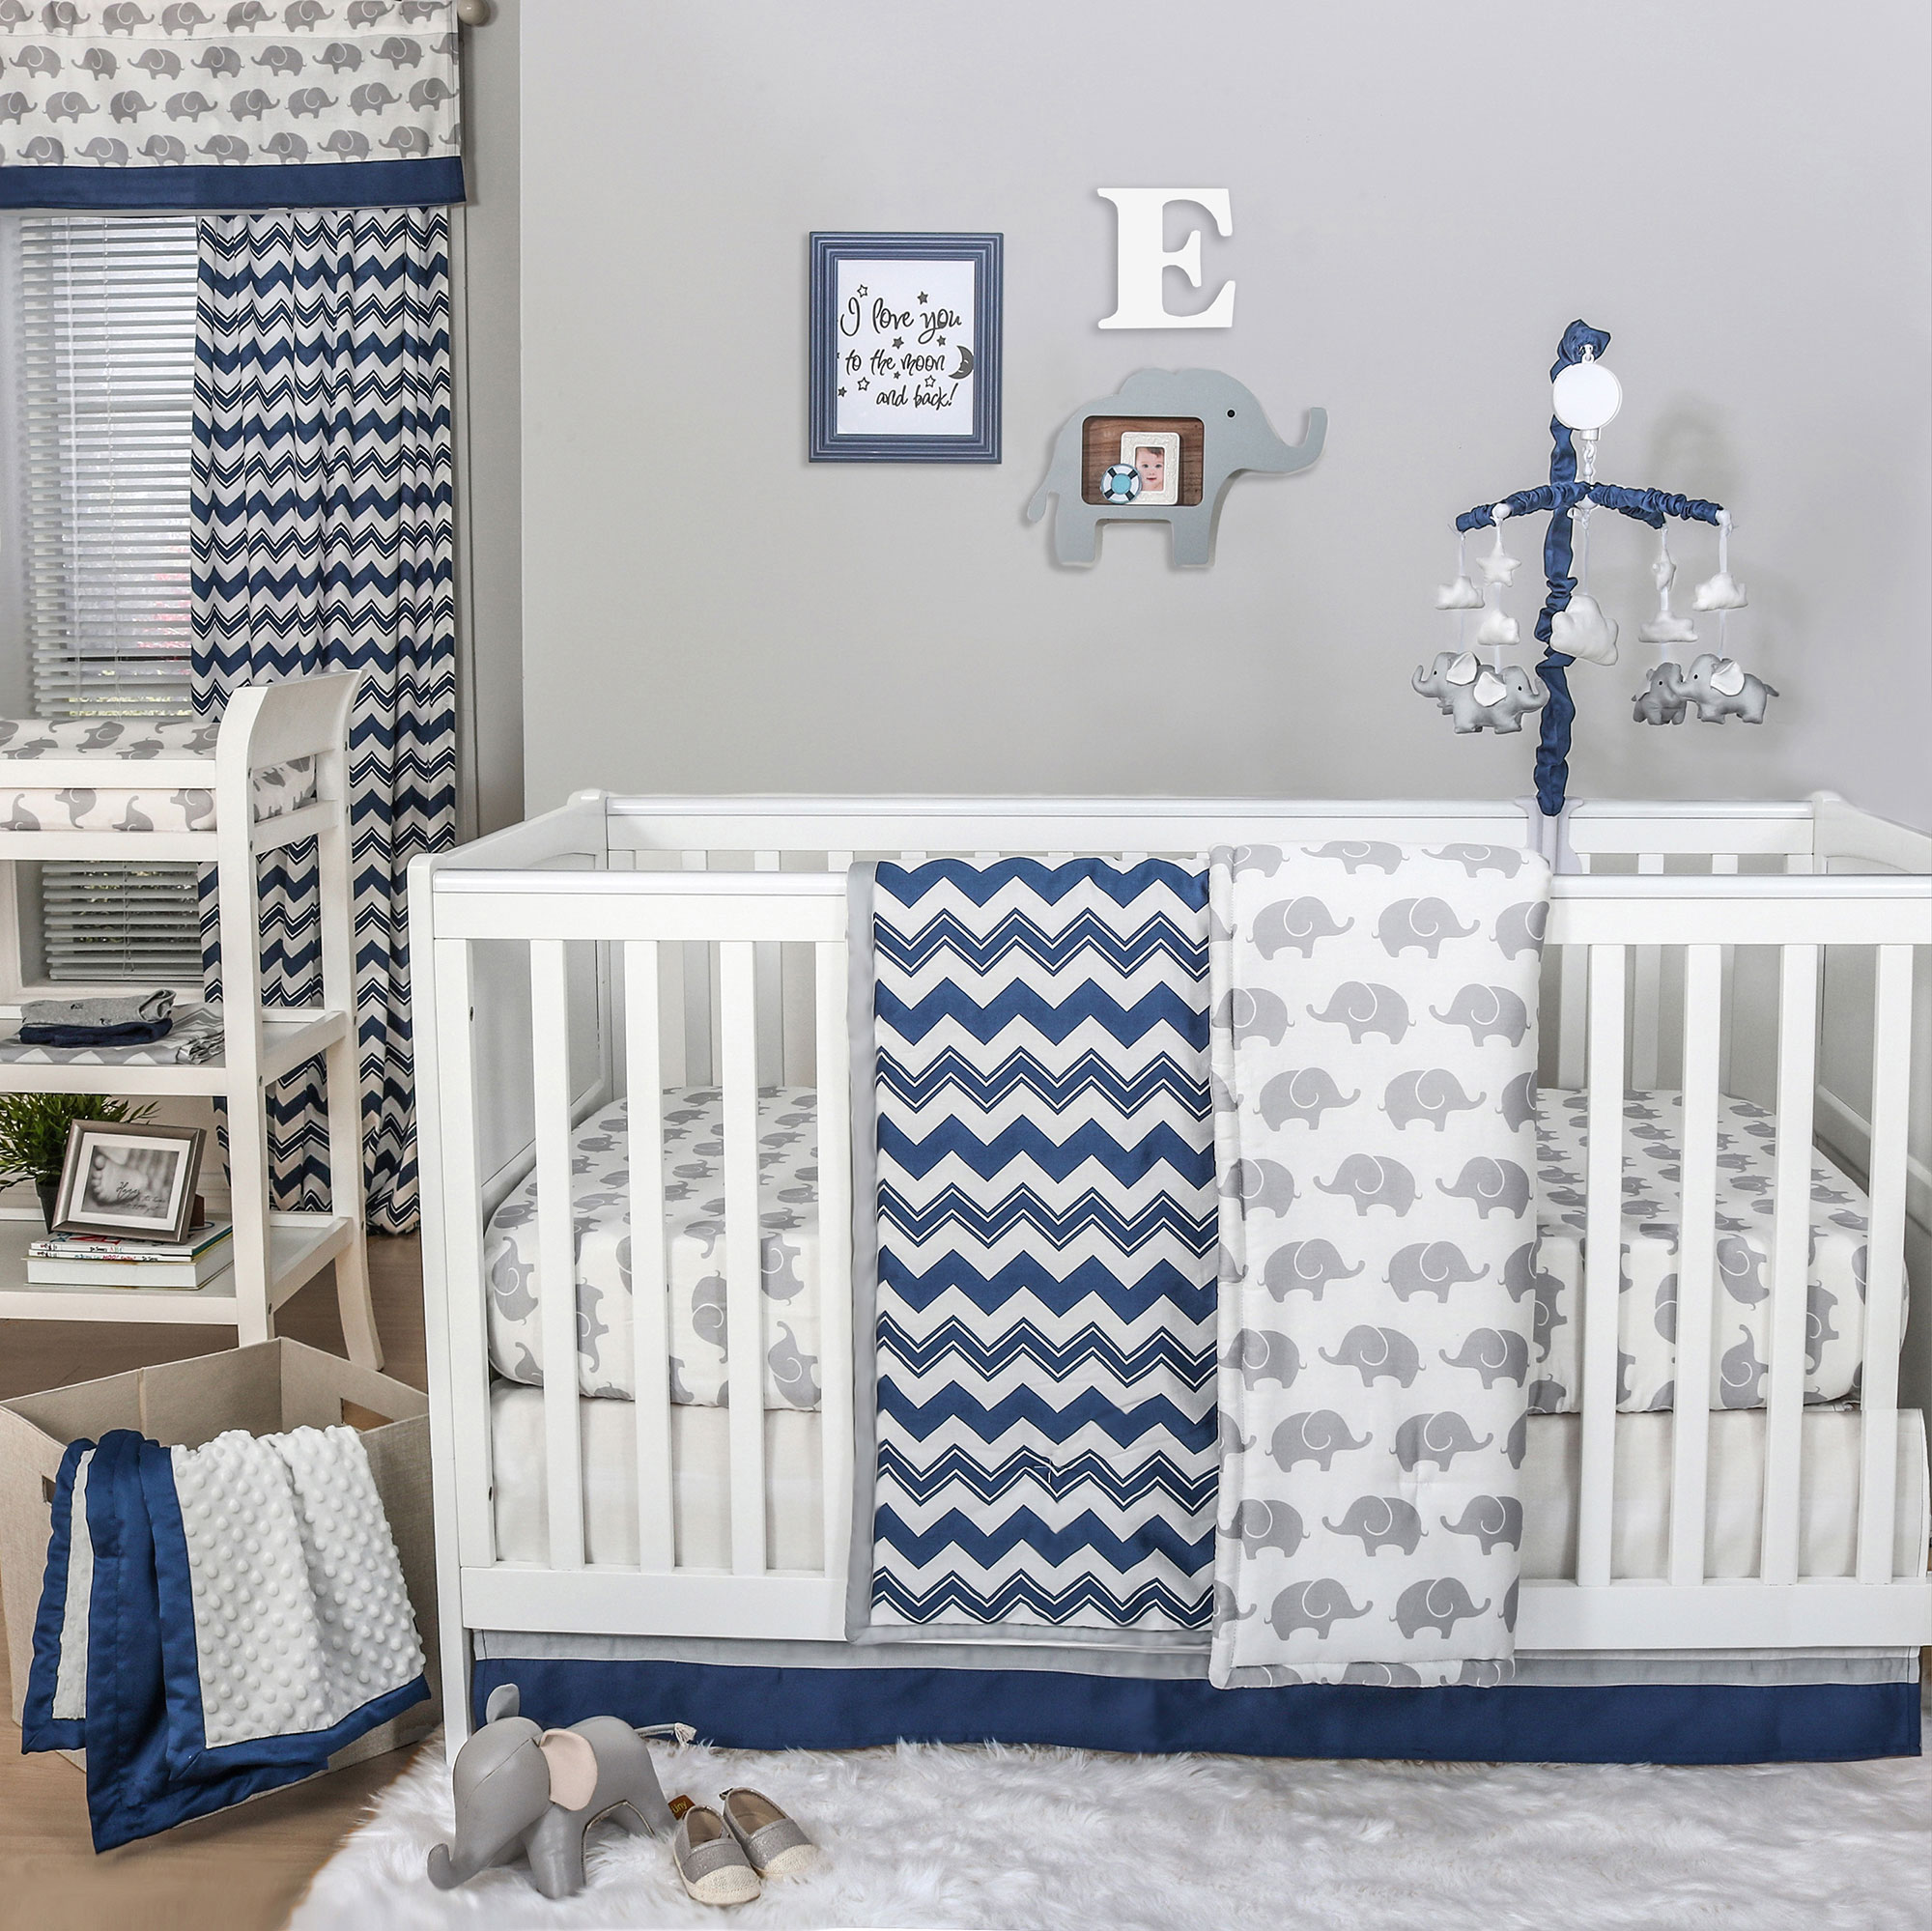 Elephant Baby Boy Crib Bedding Part - 20: Eli Navy Chevron-Grey Elephant Baby Boy Crib Bedding - 20 Piece Sleep Set